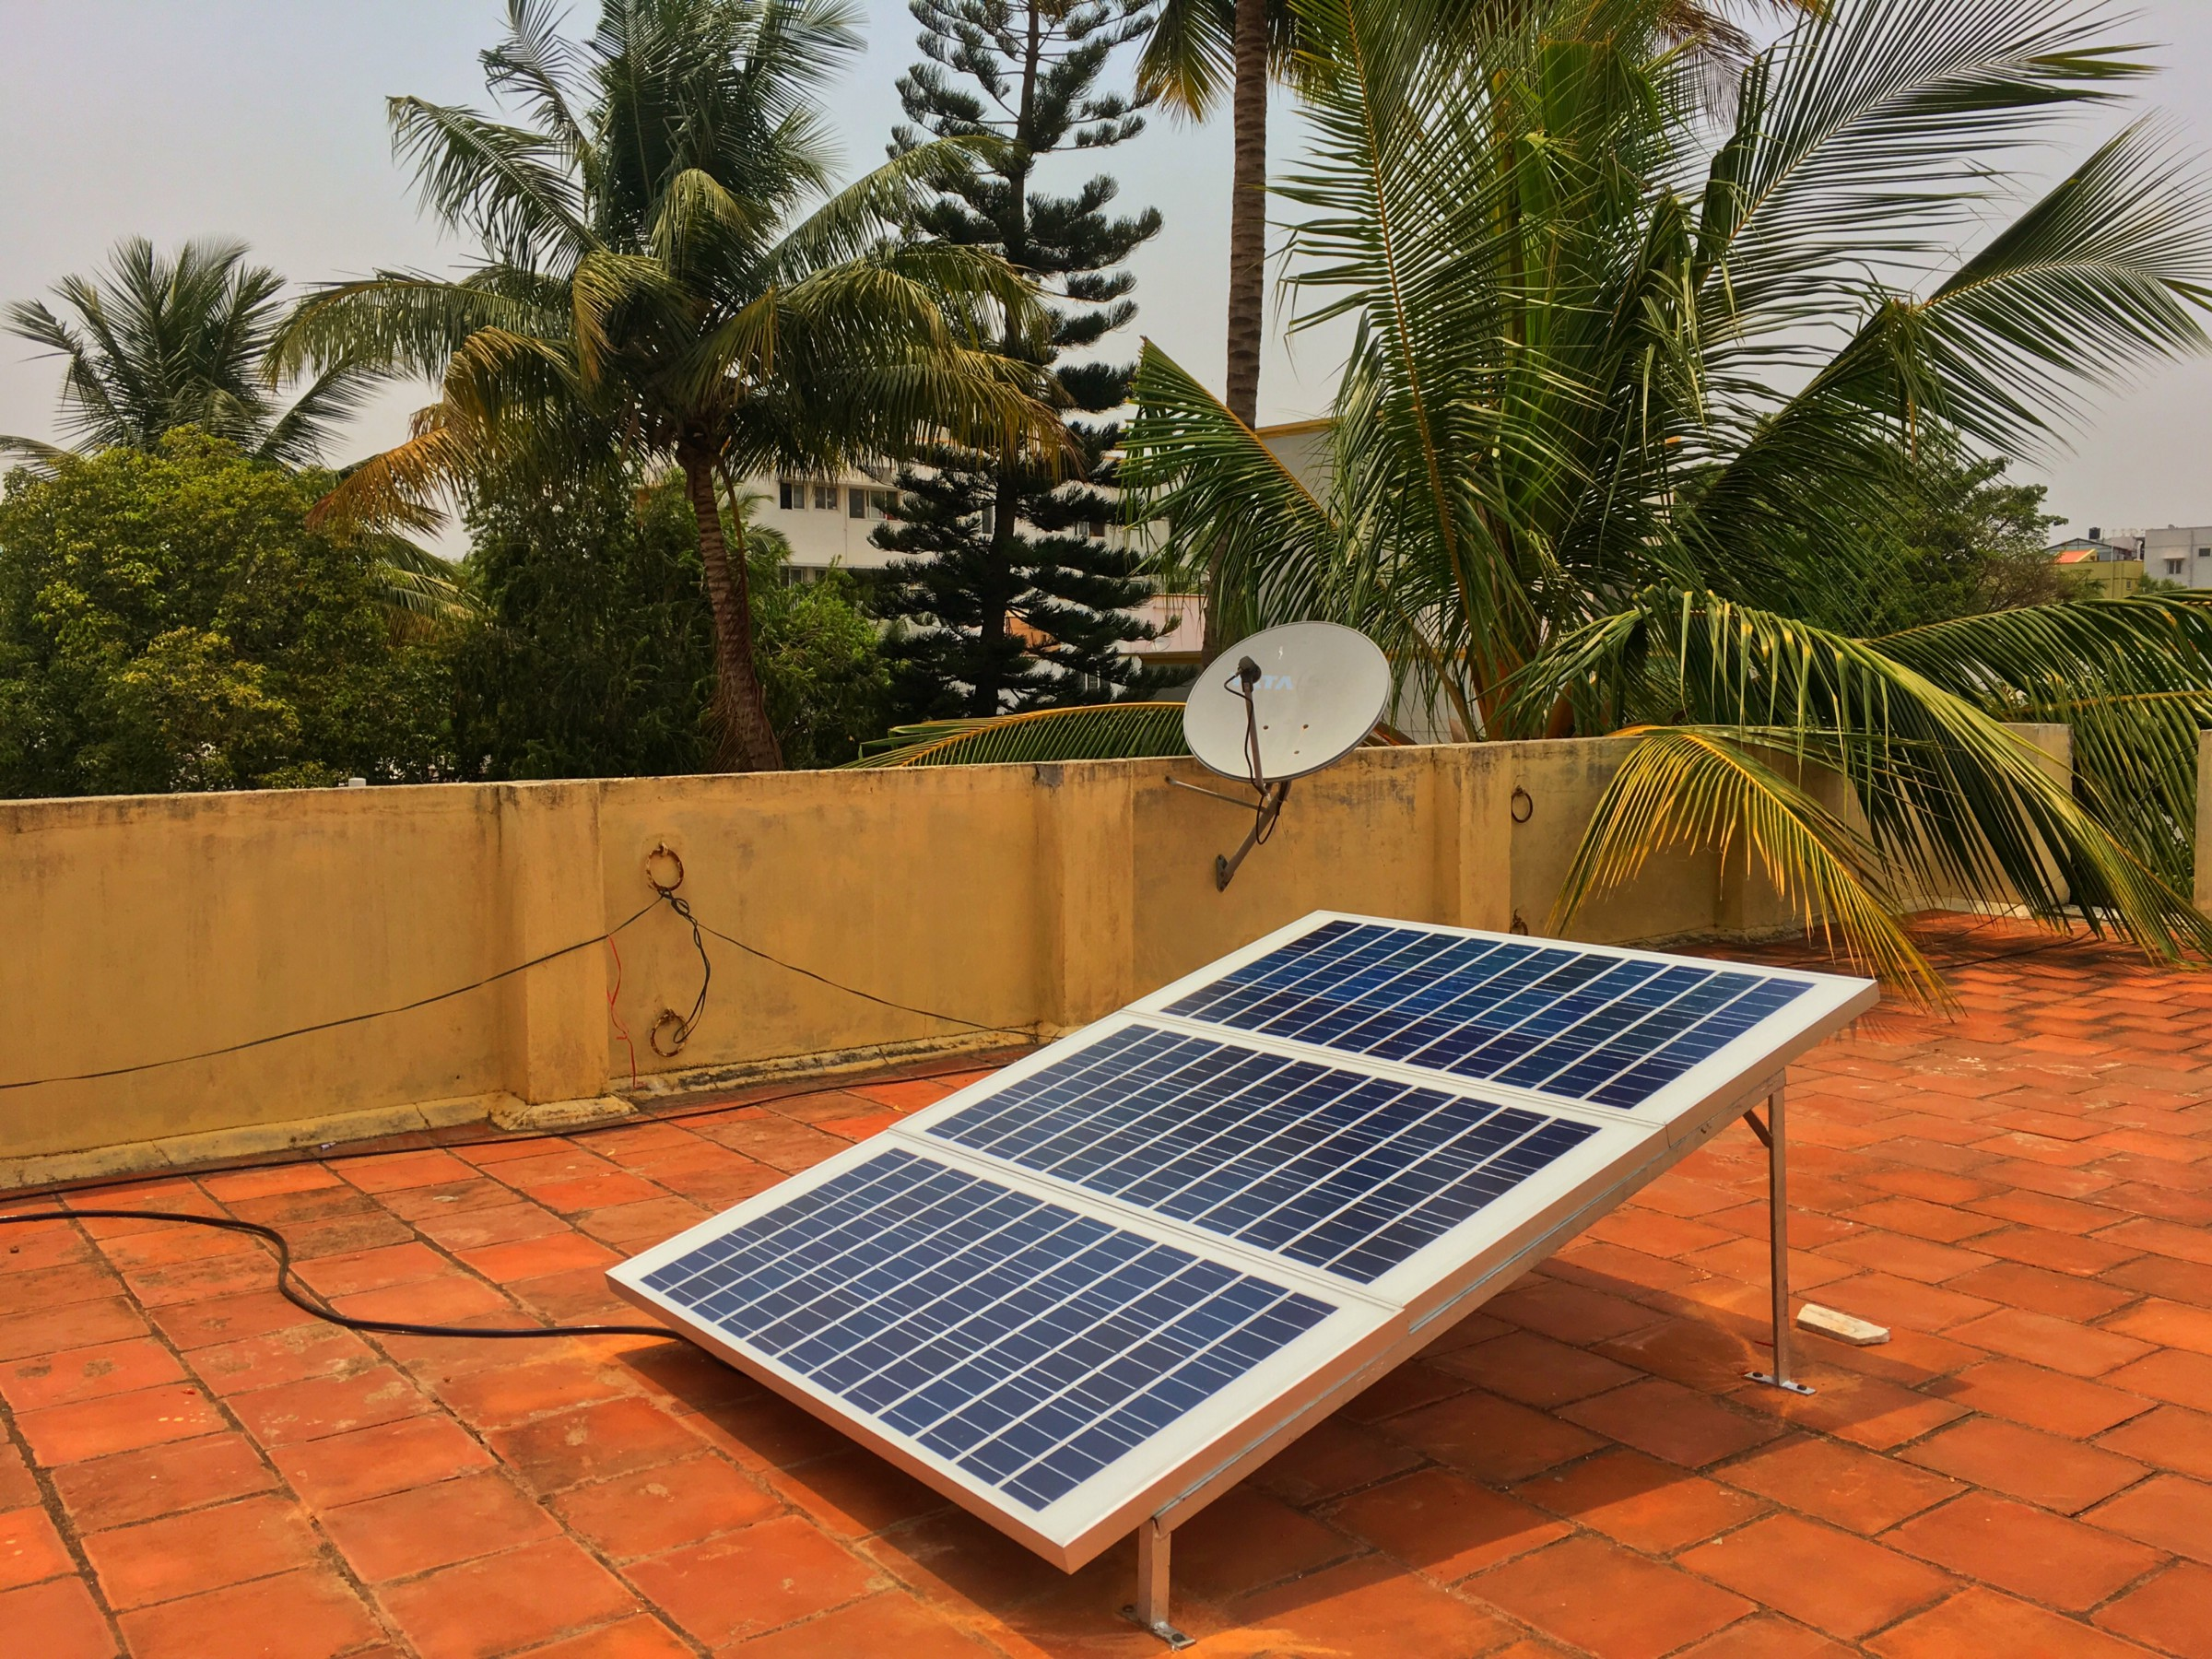 /is-using-the-blazing-sun-to-cool-homes-viable-in-india-bf0c3adac799 feature image